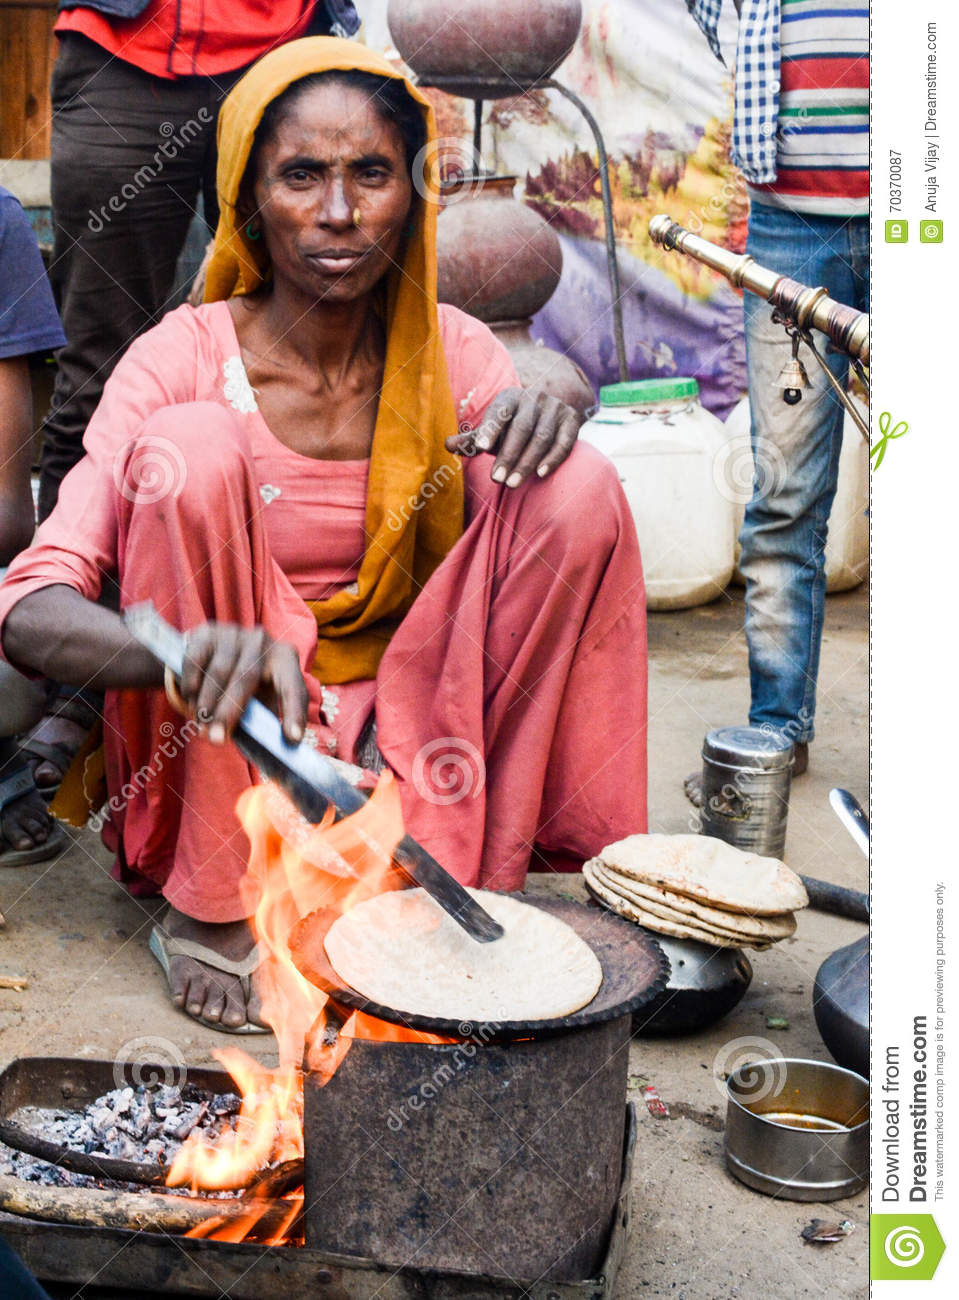 https://thumbs.dreamstime.com/z/rural-woman-cooking-chapati-indian-women-traditional-way-long-day-work-road-side-shelter-70370087.jpg Indian Woman Cooking